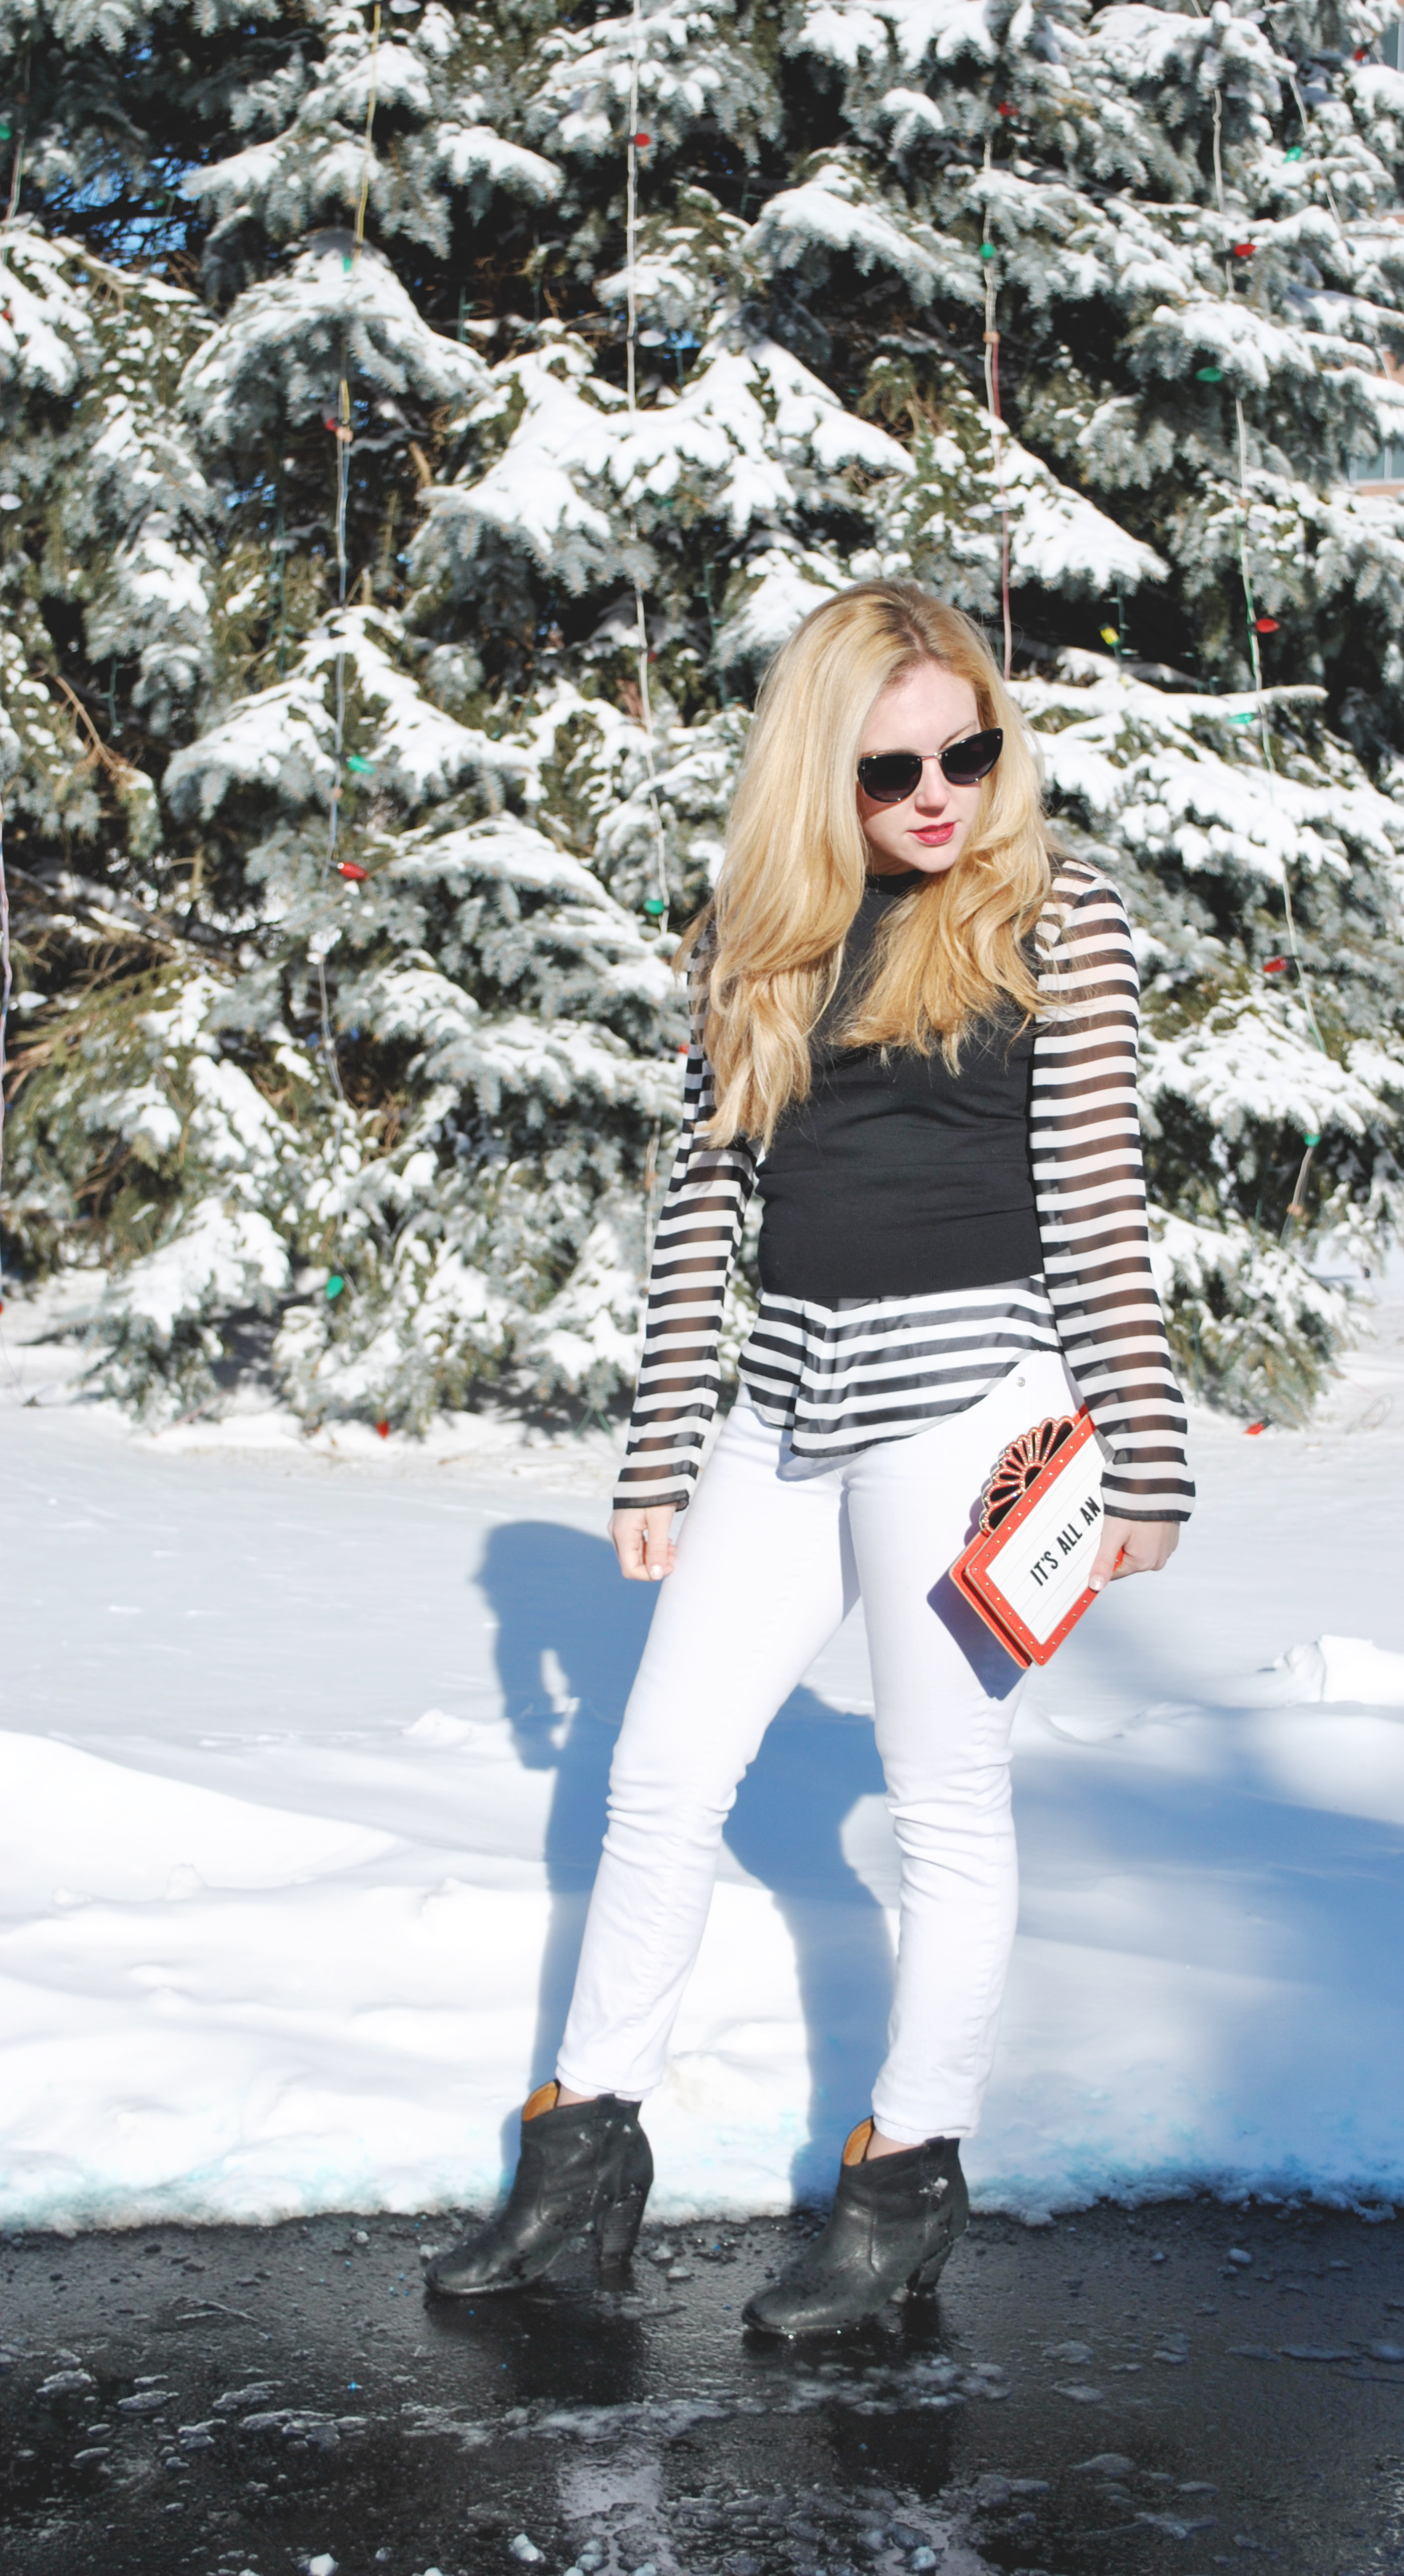 thoughtfulwish | fashion blogger, fashion, kate spade, j.crew, bosblogger, boston blogger, boston fashion, stripes, winter fashion, winter white